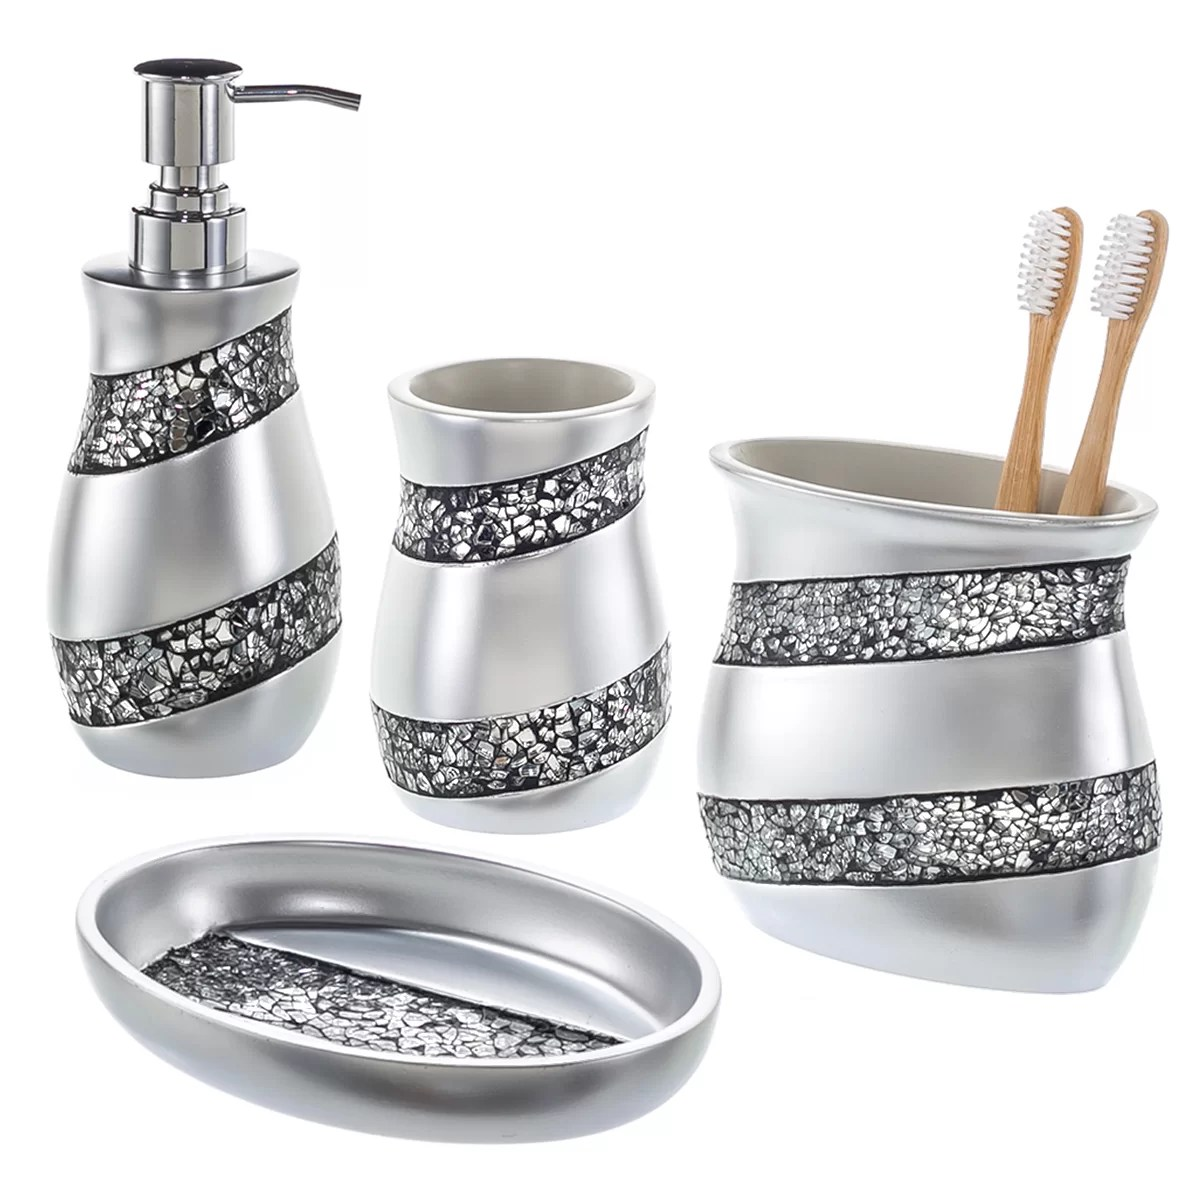 Creative Scents 4 Piece Mosaic Glass Bathroom Accessory